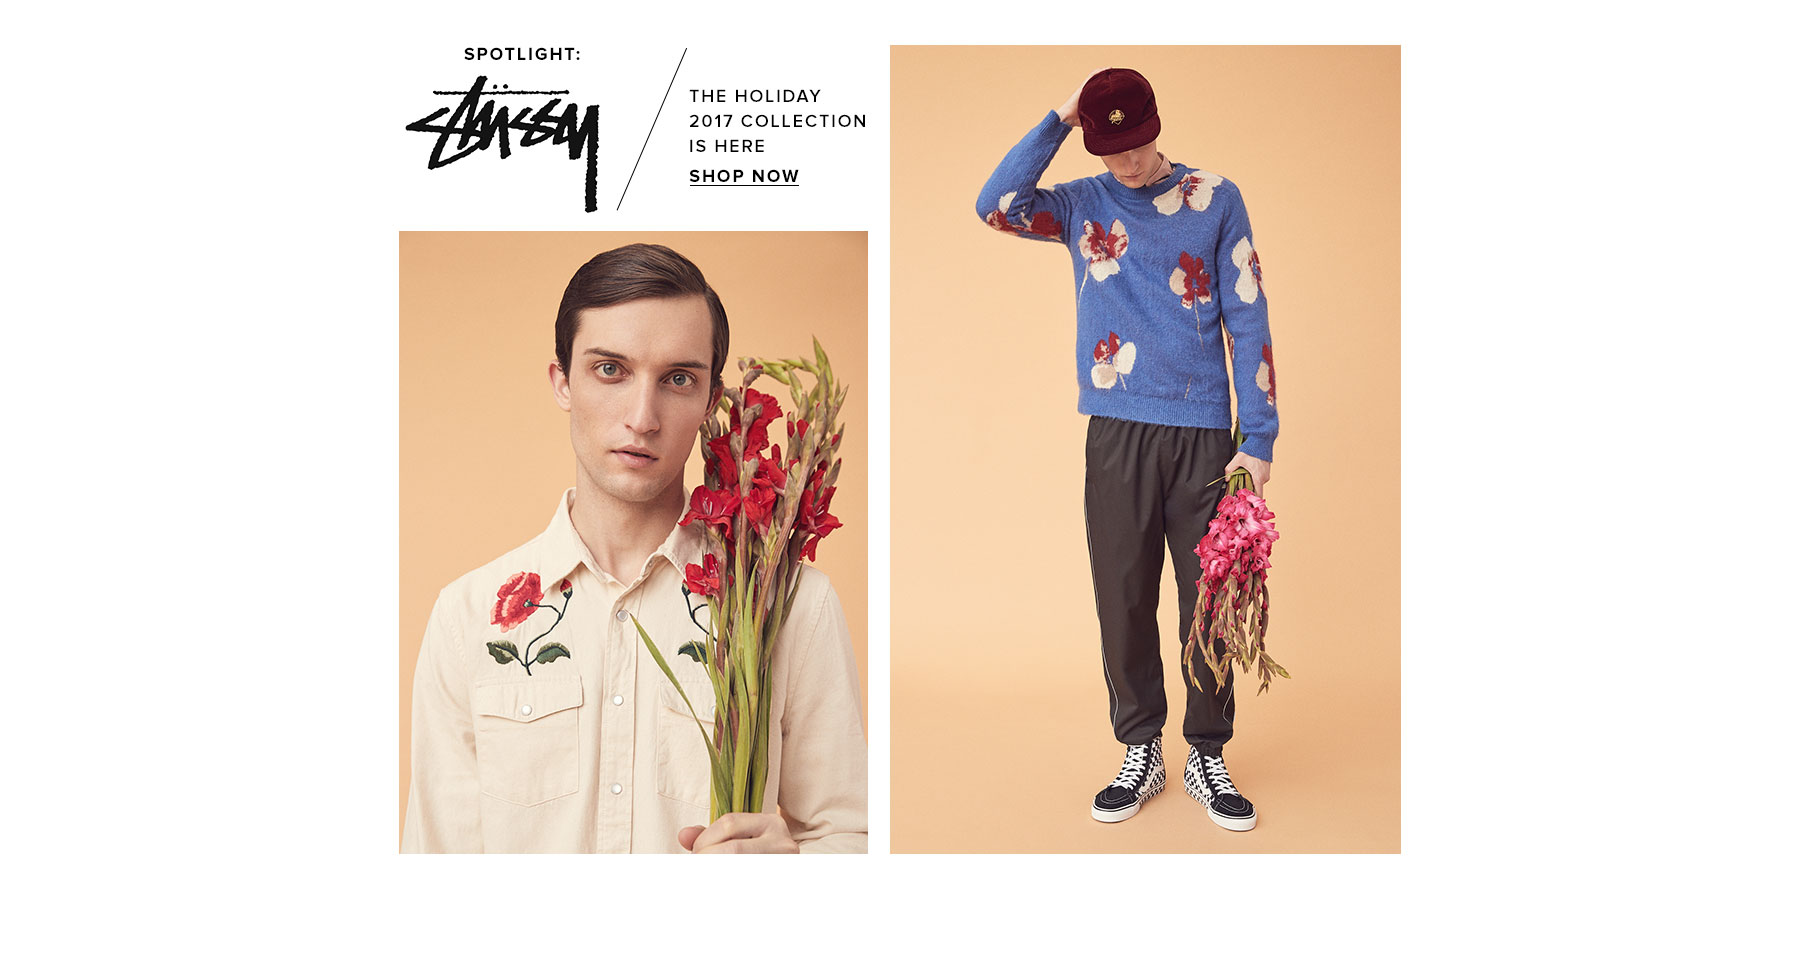 SPOTLIGHT: STUSSY. The Holiday 2017 collection is here. Shop now.